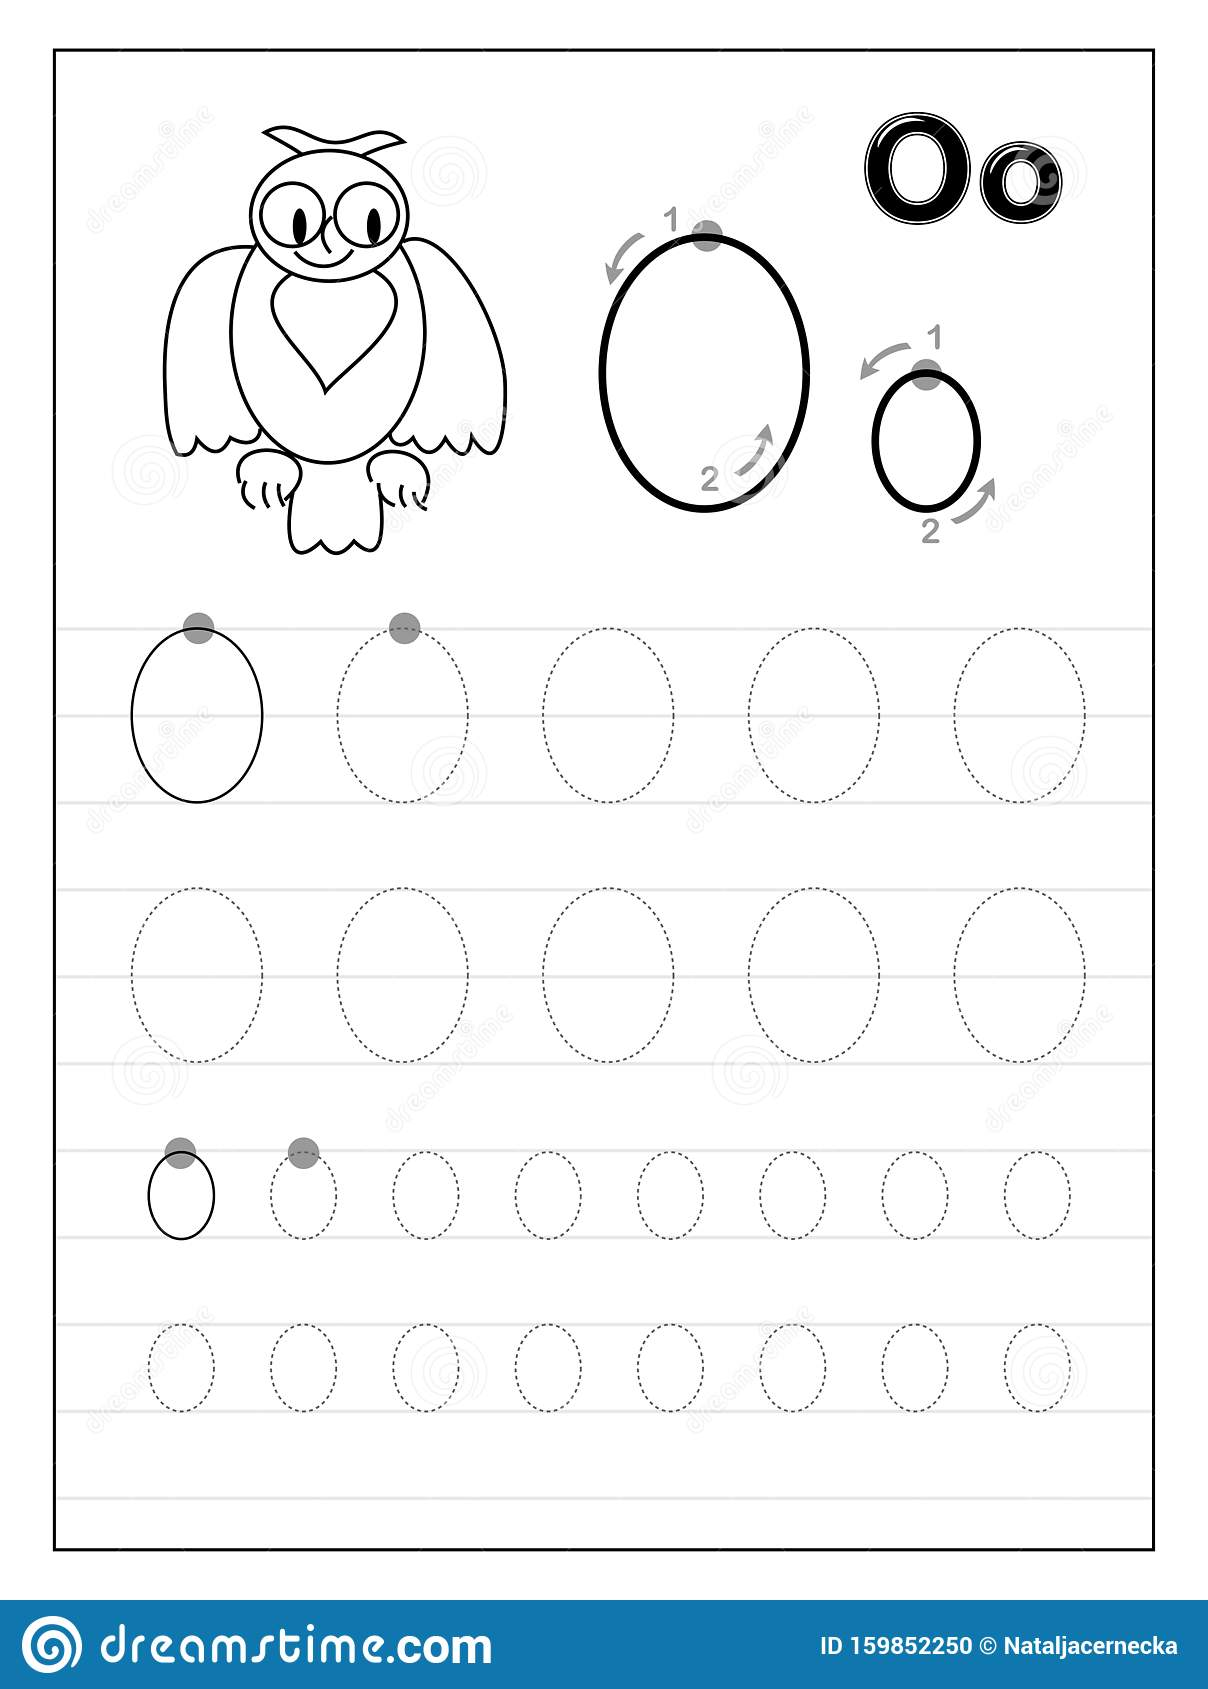 It is a graphic of Printable Letter O for activity